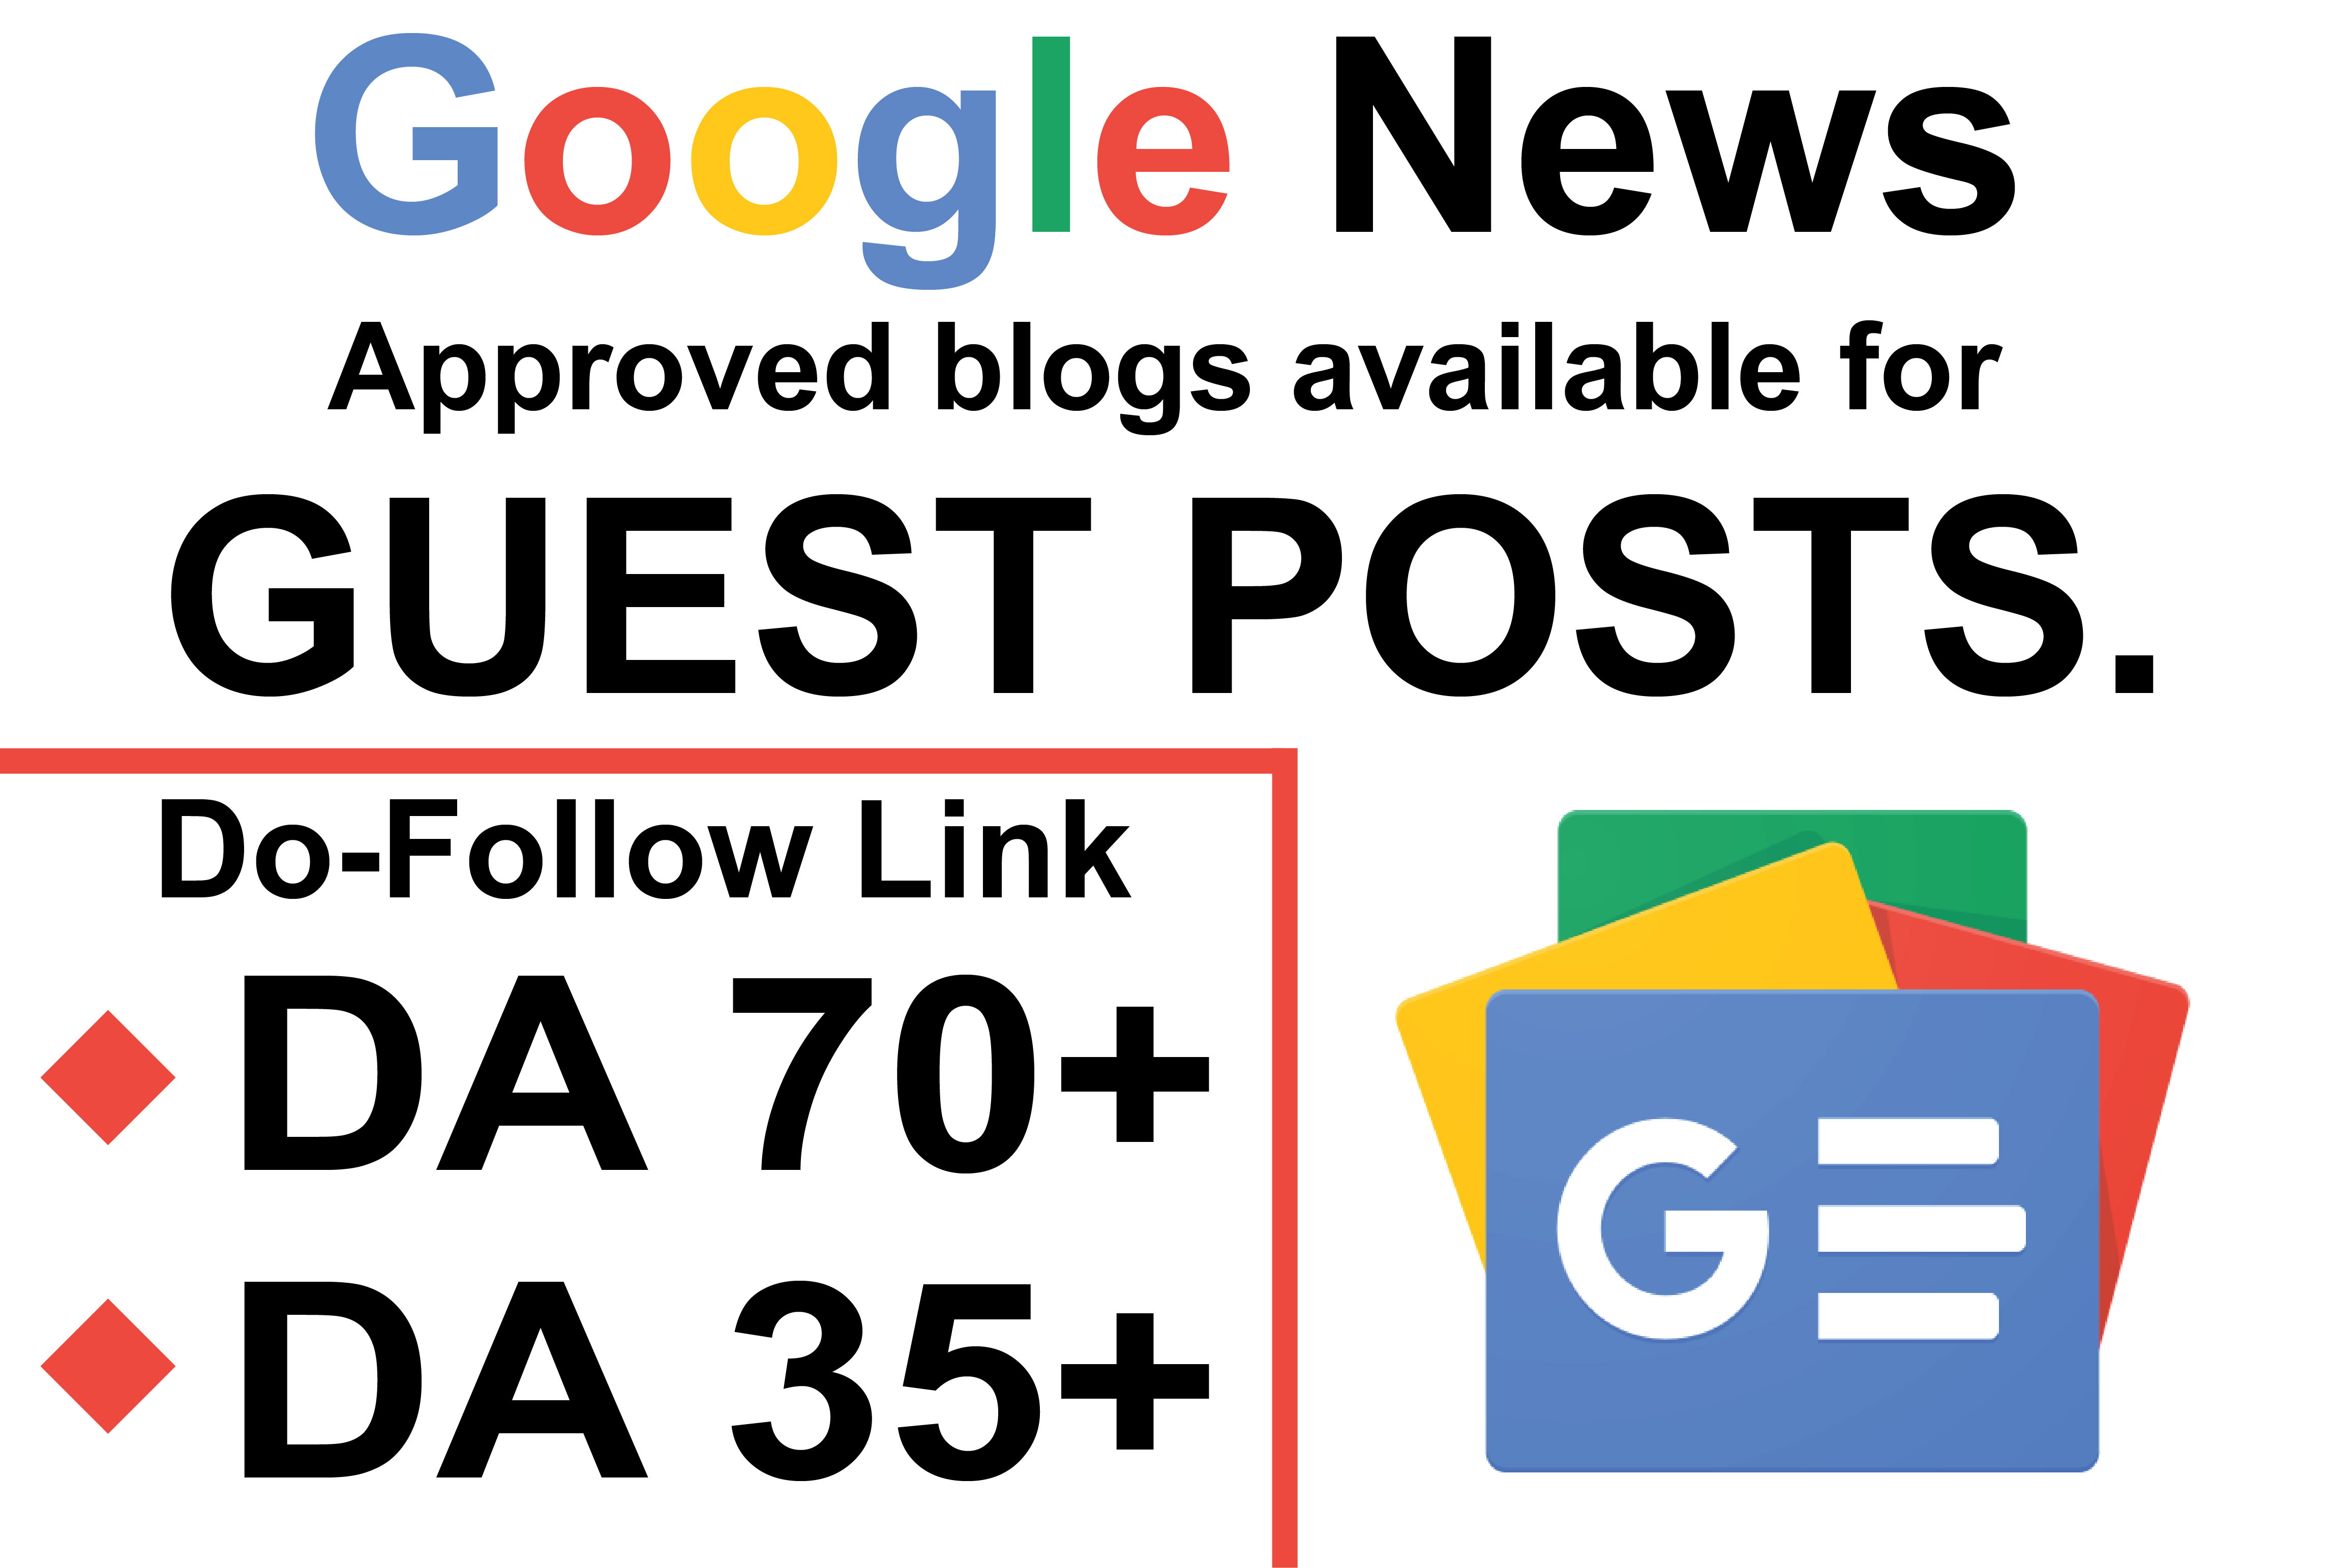 I will do a guest post on da 70 google news approved site